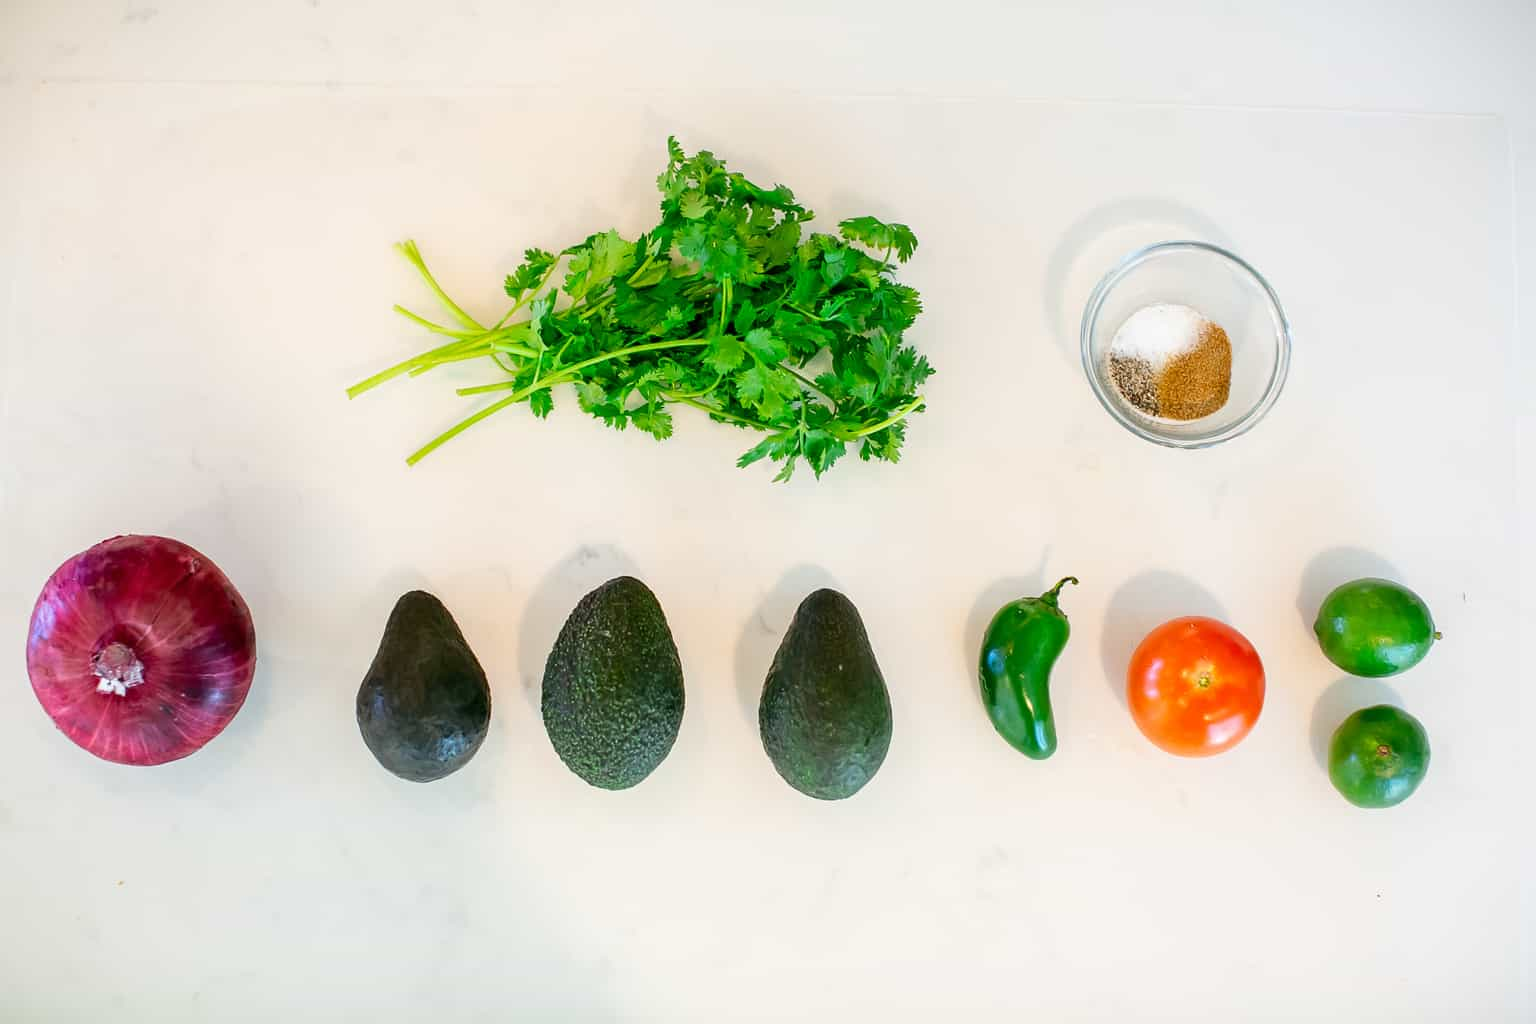 Flat lay image of ingredients needed to make spicy guacamole